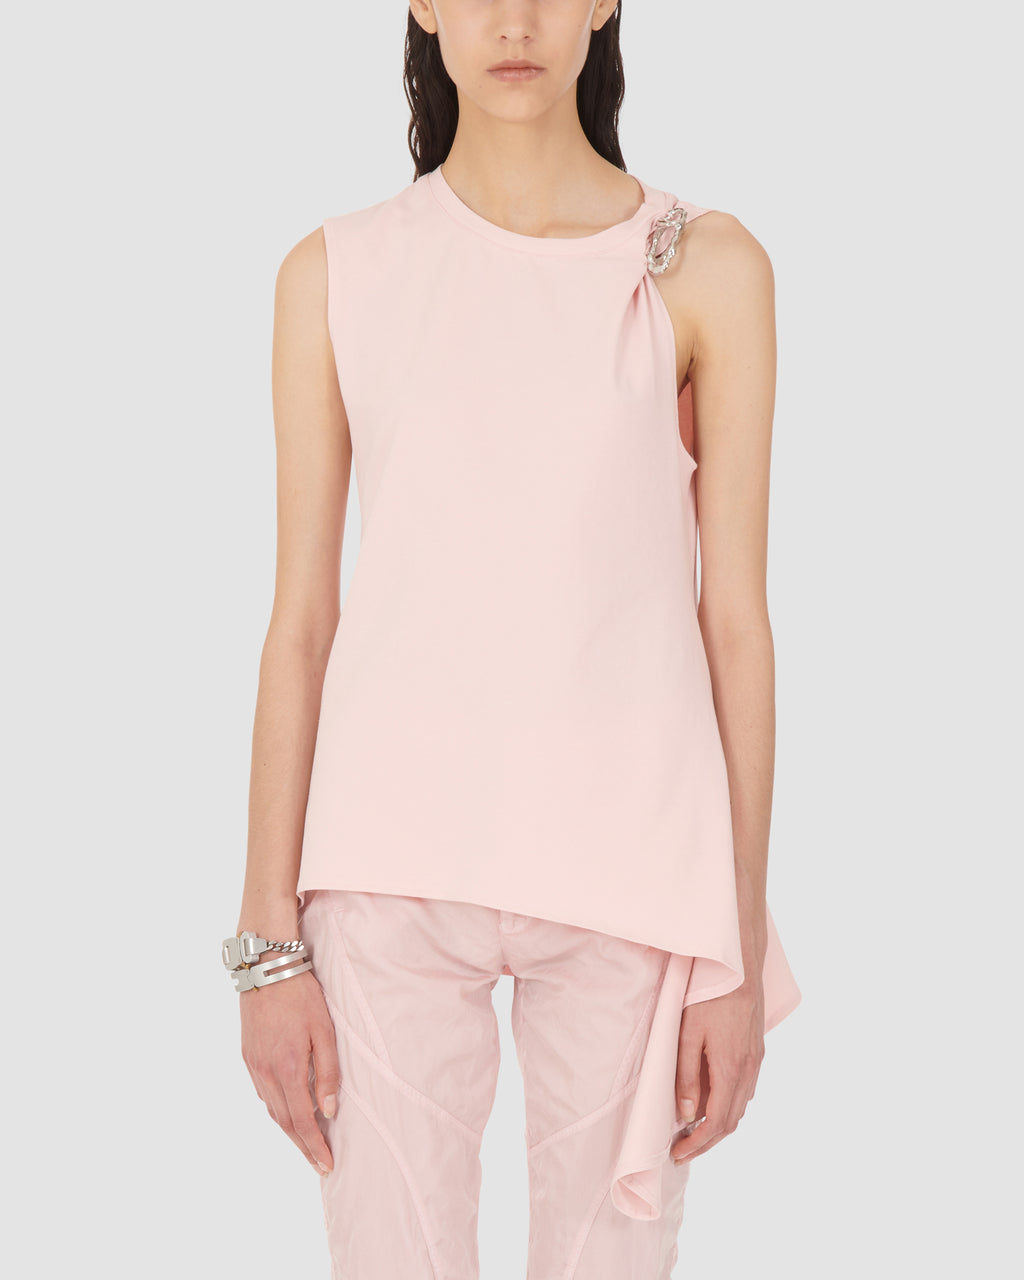 1017 ALYX 9SM | SLEEVELESS SMOCKED TOP | Top | Google Shopping, PINK, S20, SS20, TOPS & SHIRTS, Woman, WOMEN